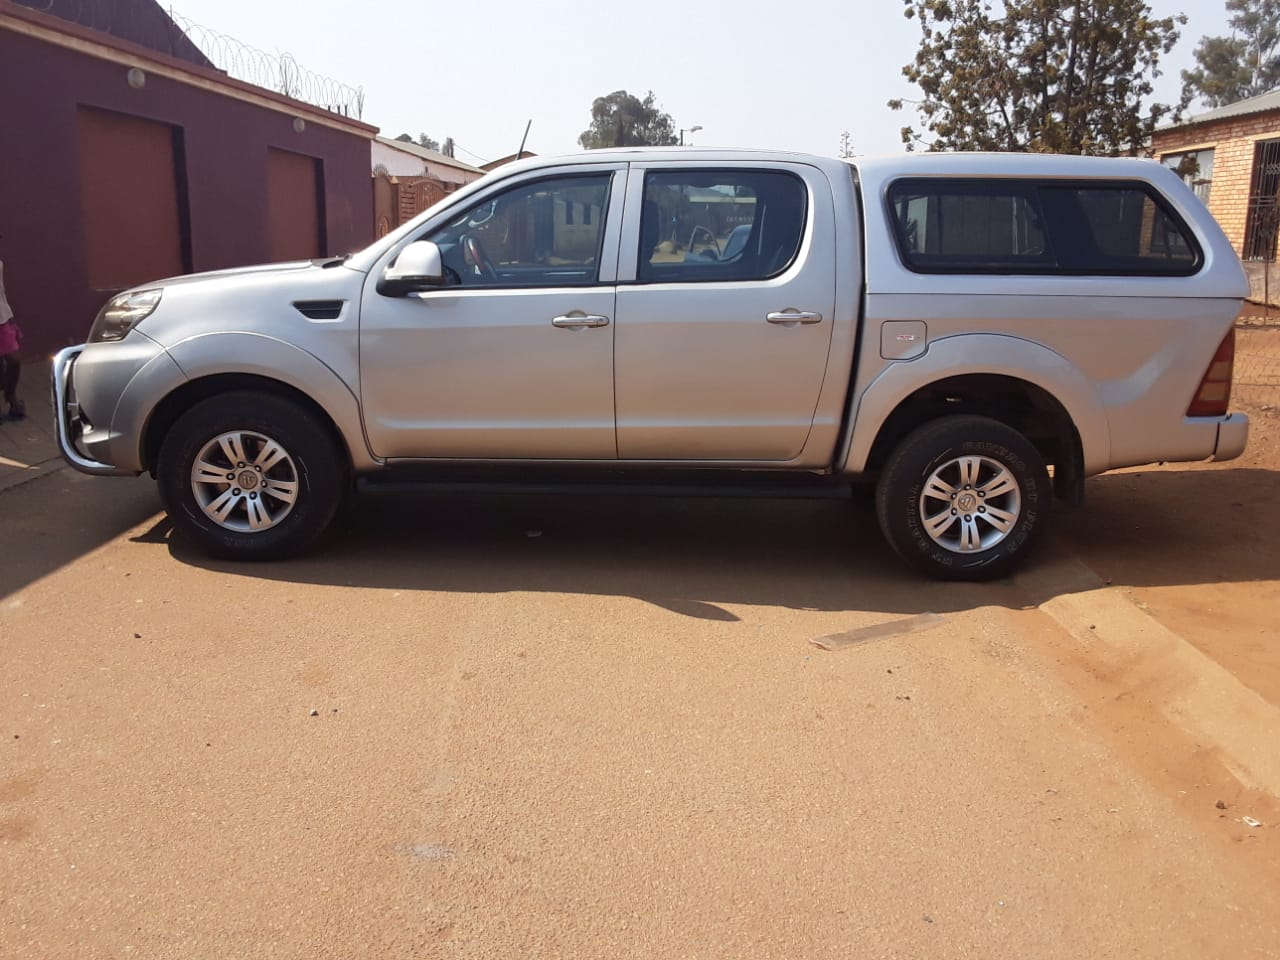 2017 Foton Tunland 2.8 double cab 4x4 Comfort